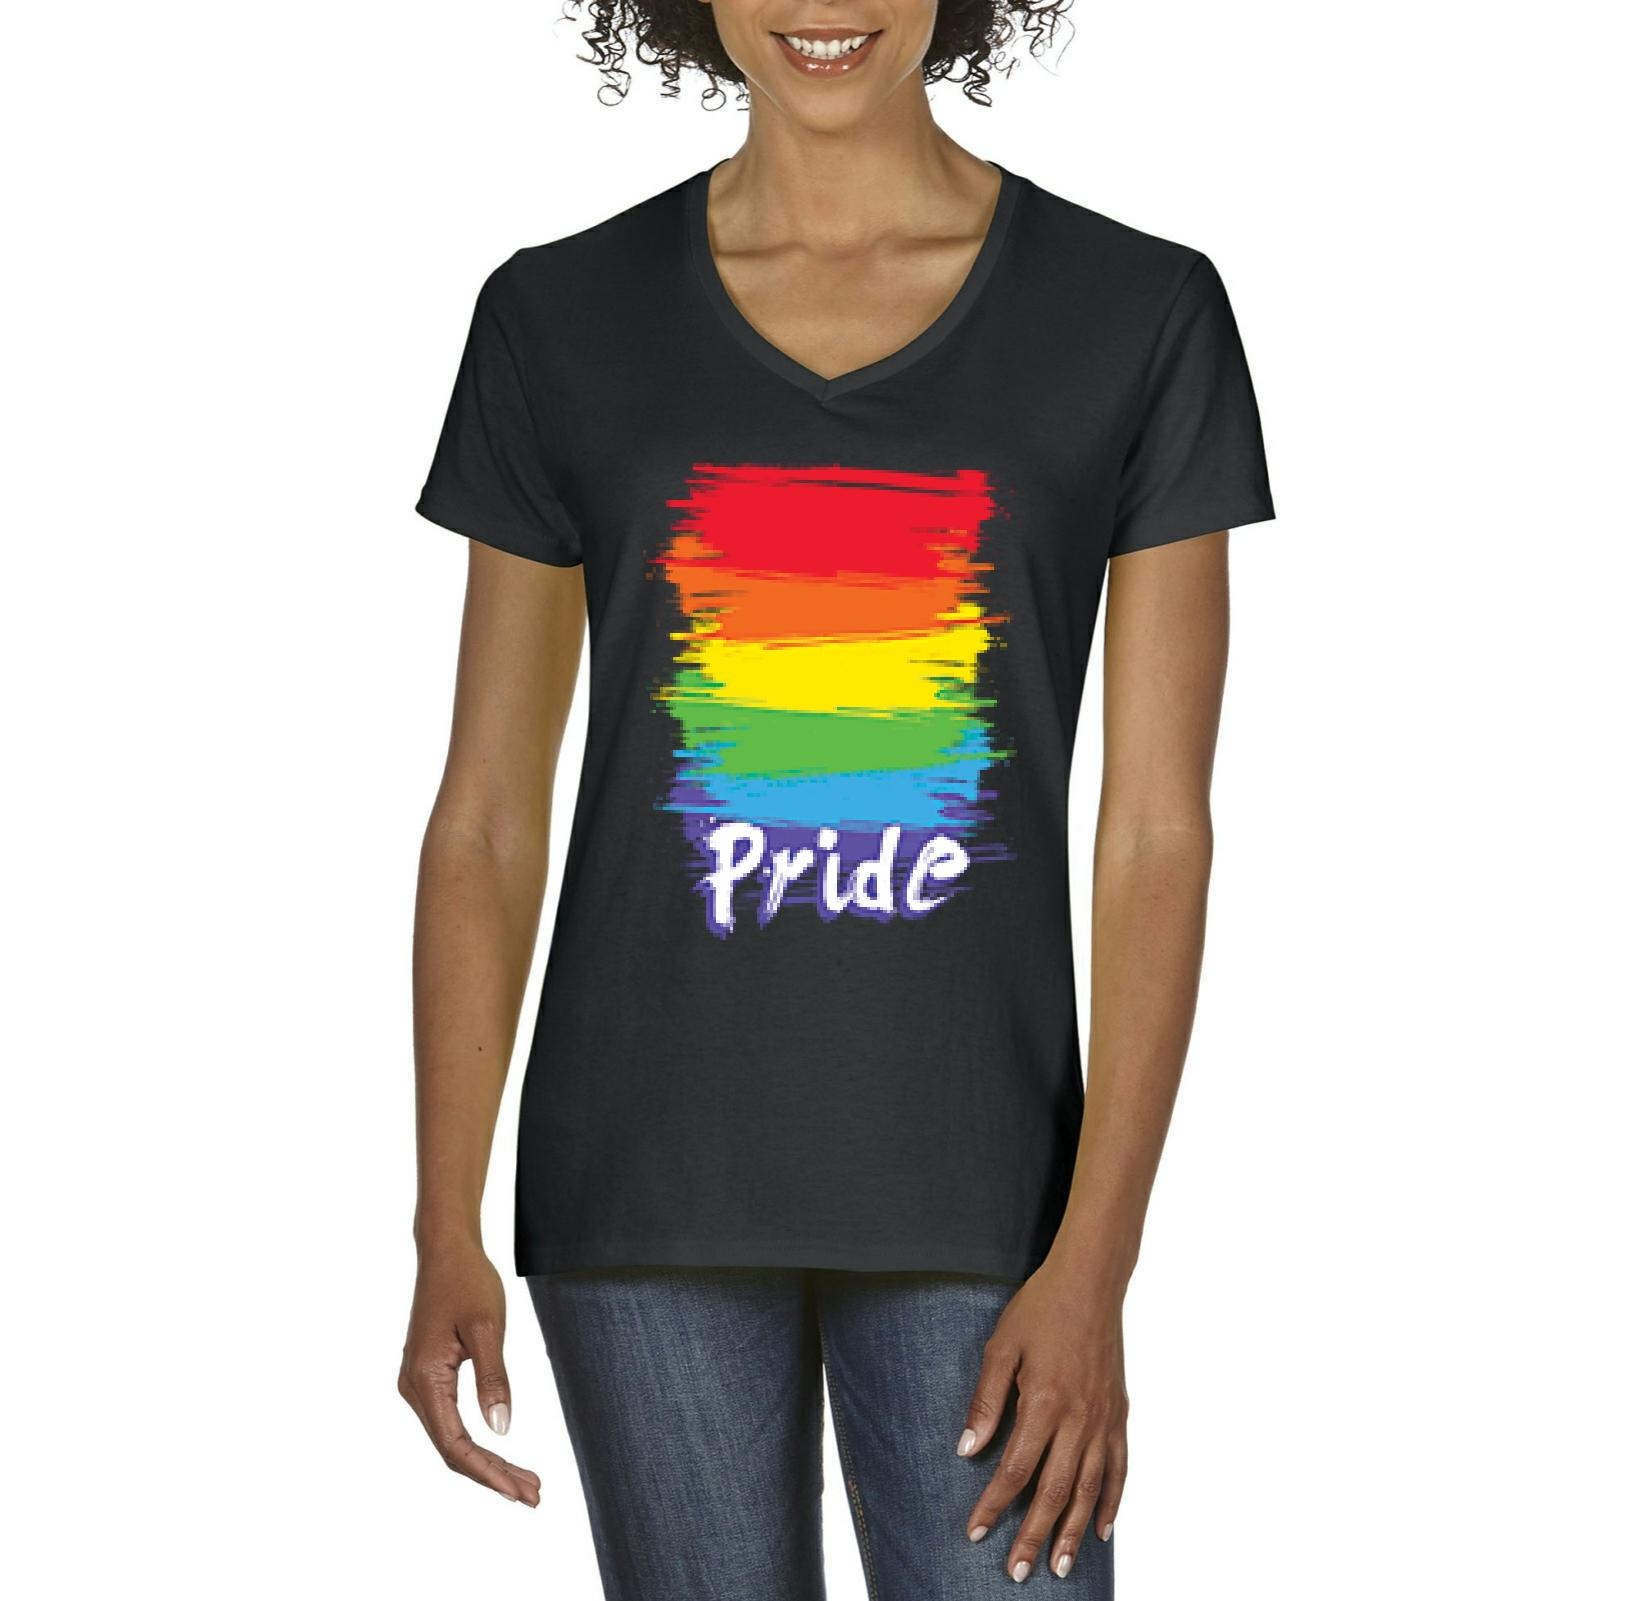 J_H_I Rainbow Pride Gift for Gay LGBT Family Friend Birthday Christmas Party Womens Shirts V-neck